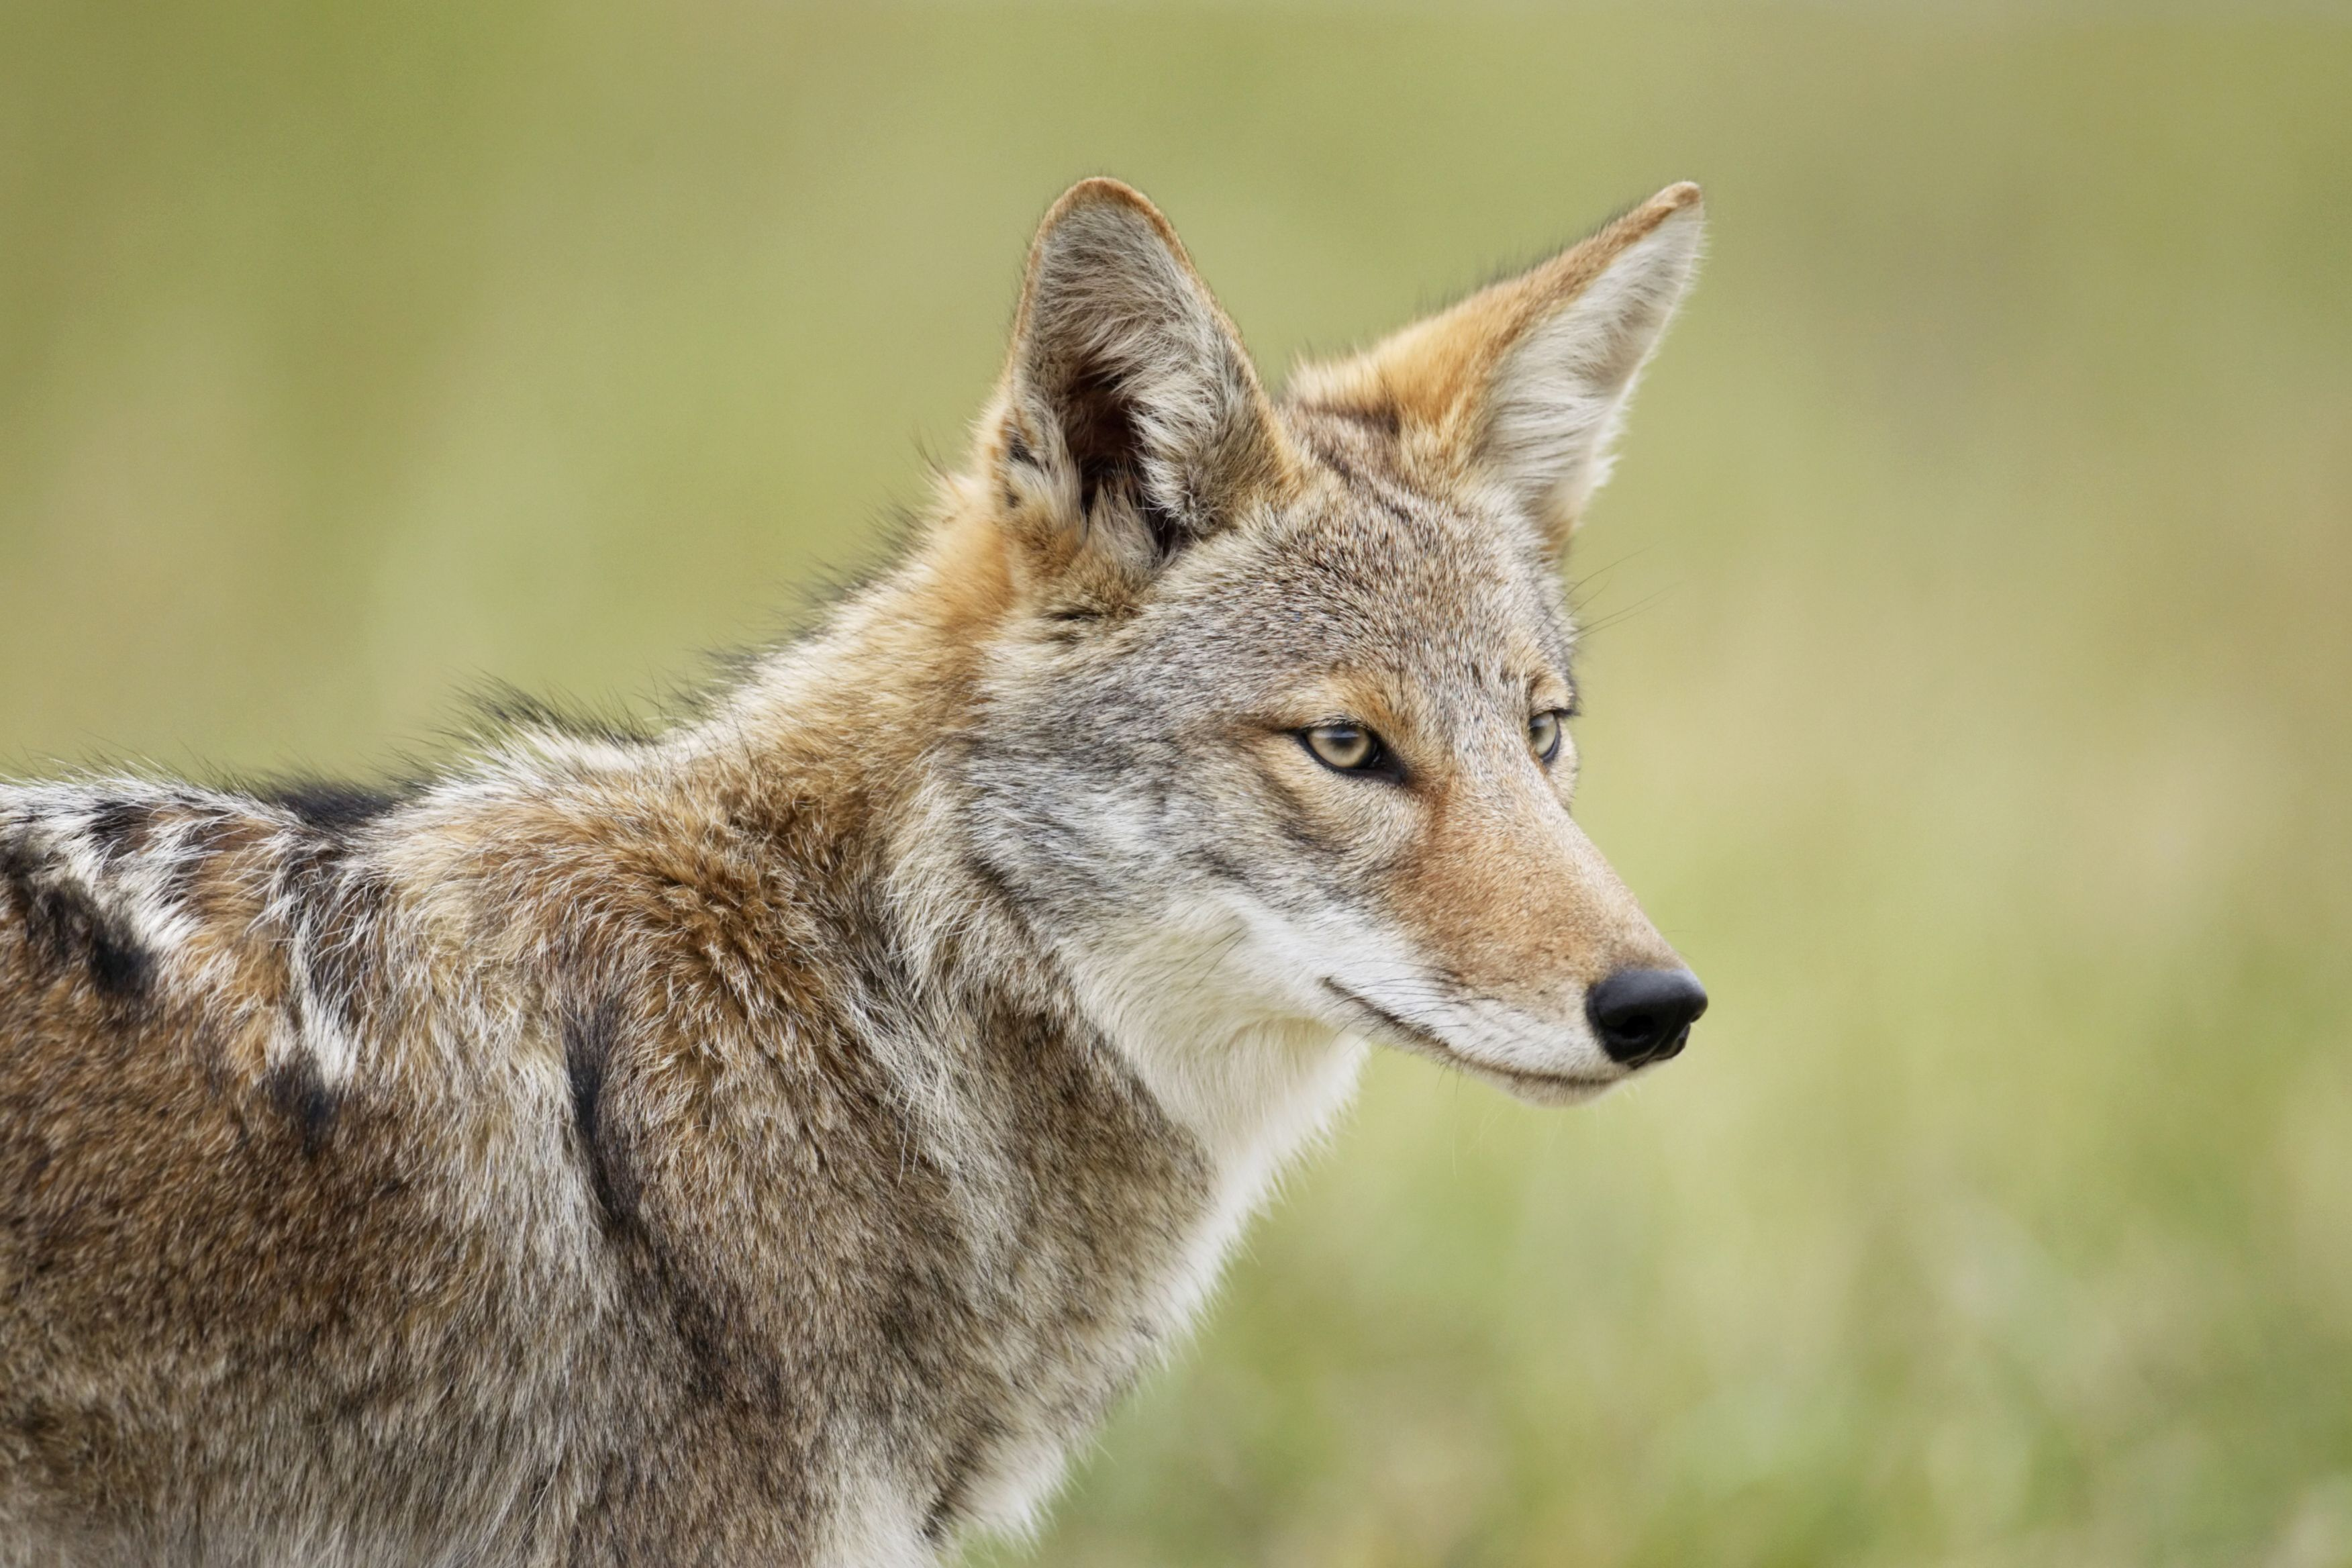 A close up of a coyote in the smoky mountains wildlife